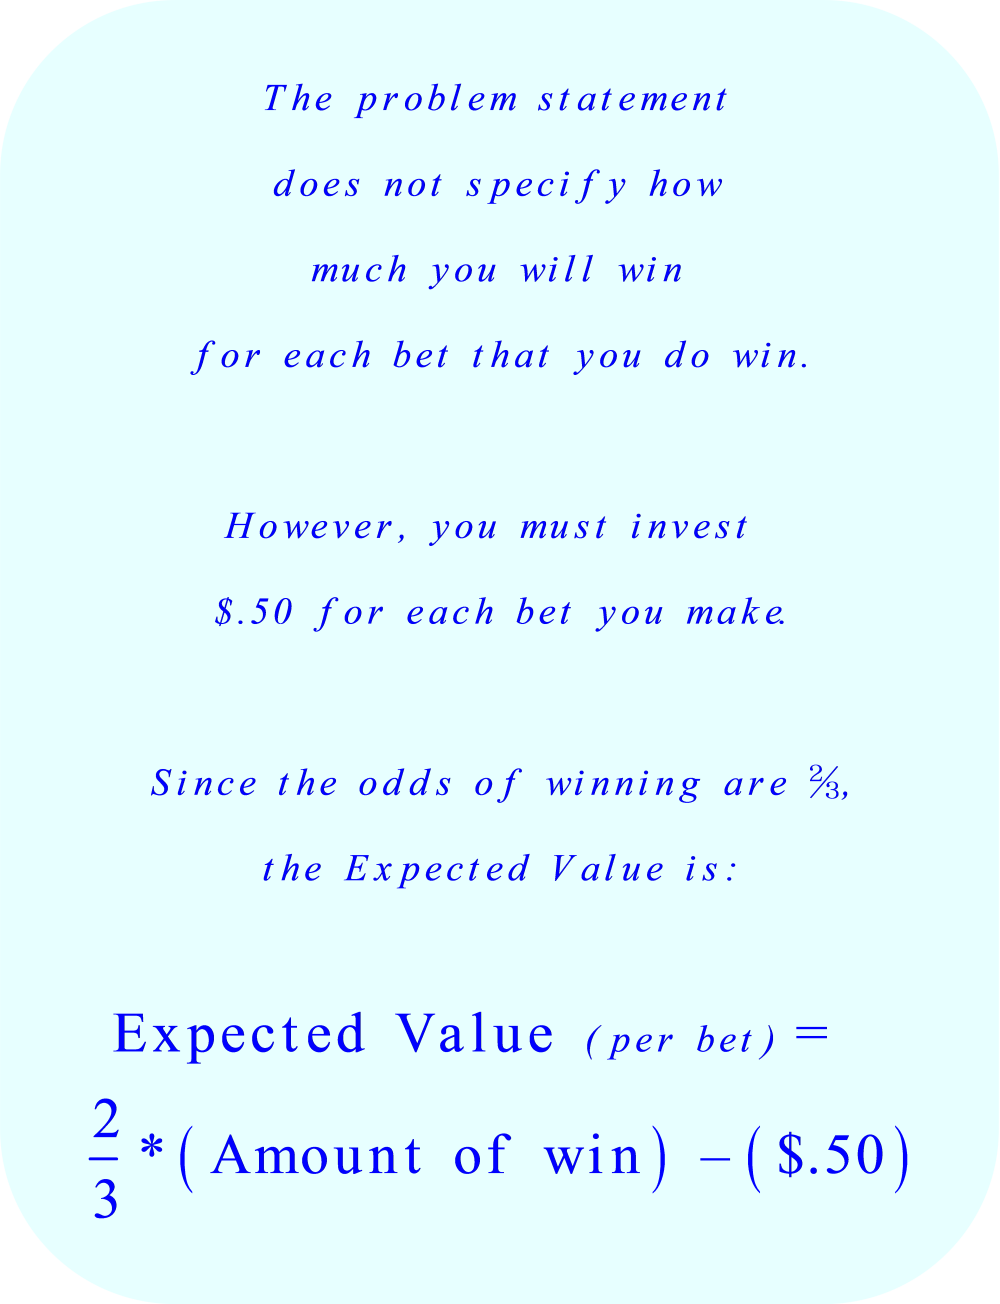 Expected Value of a Bet when the odds of winning are 2 to 3